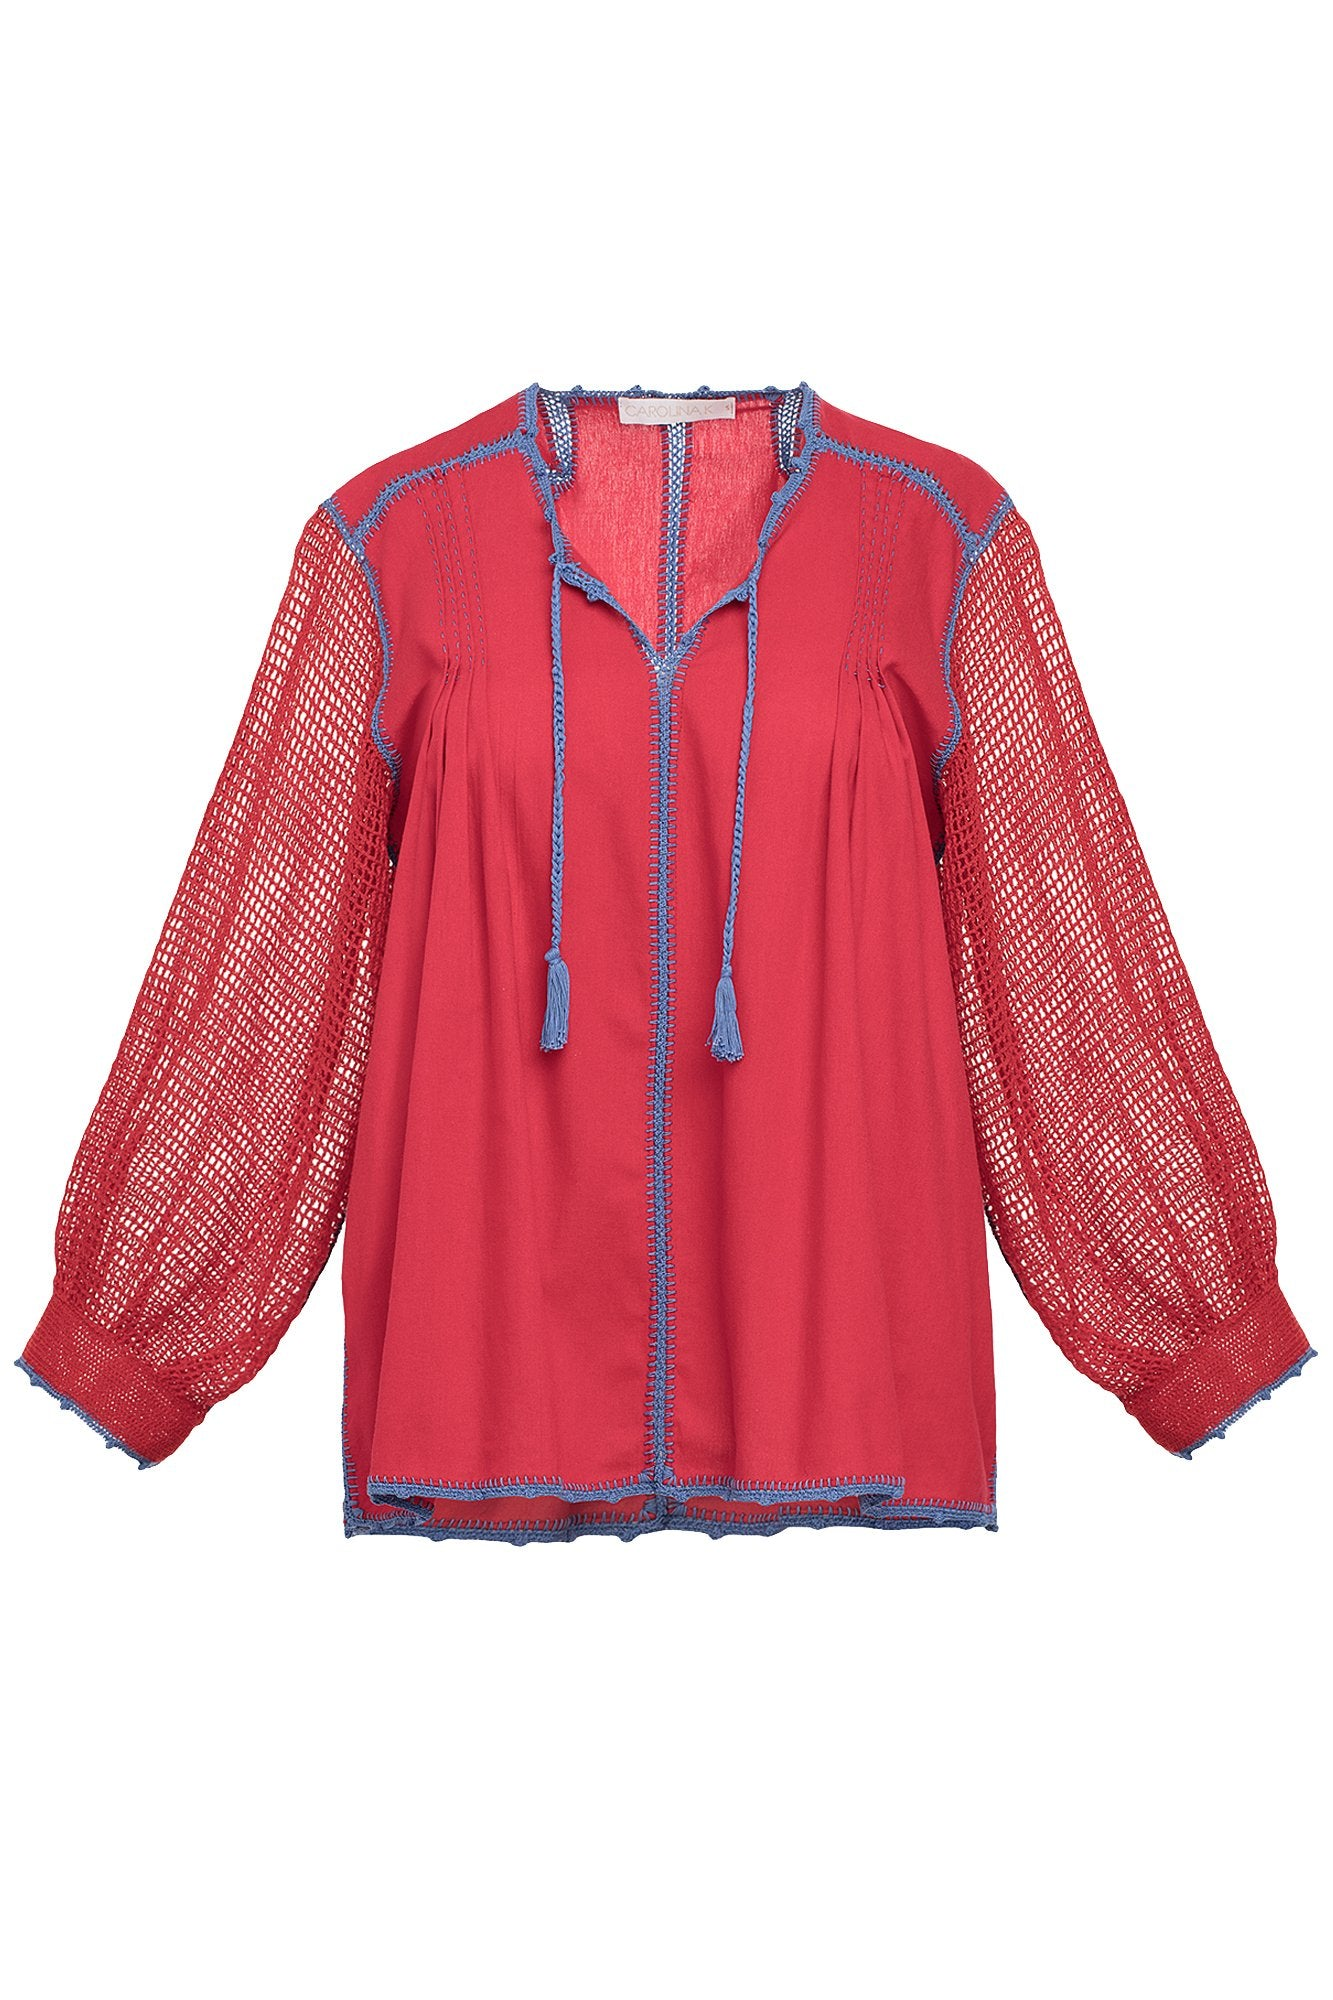 Carolina K San Juan Blouse in Red